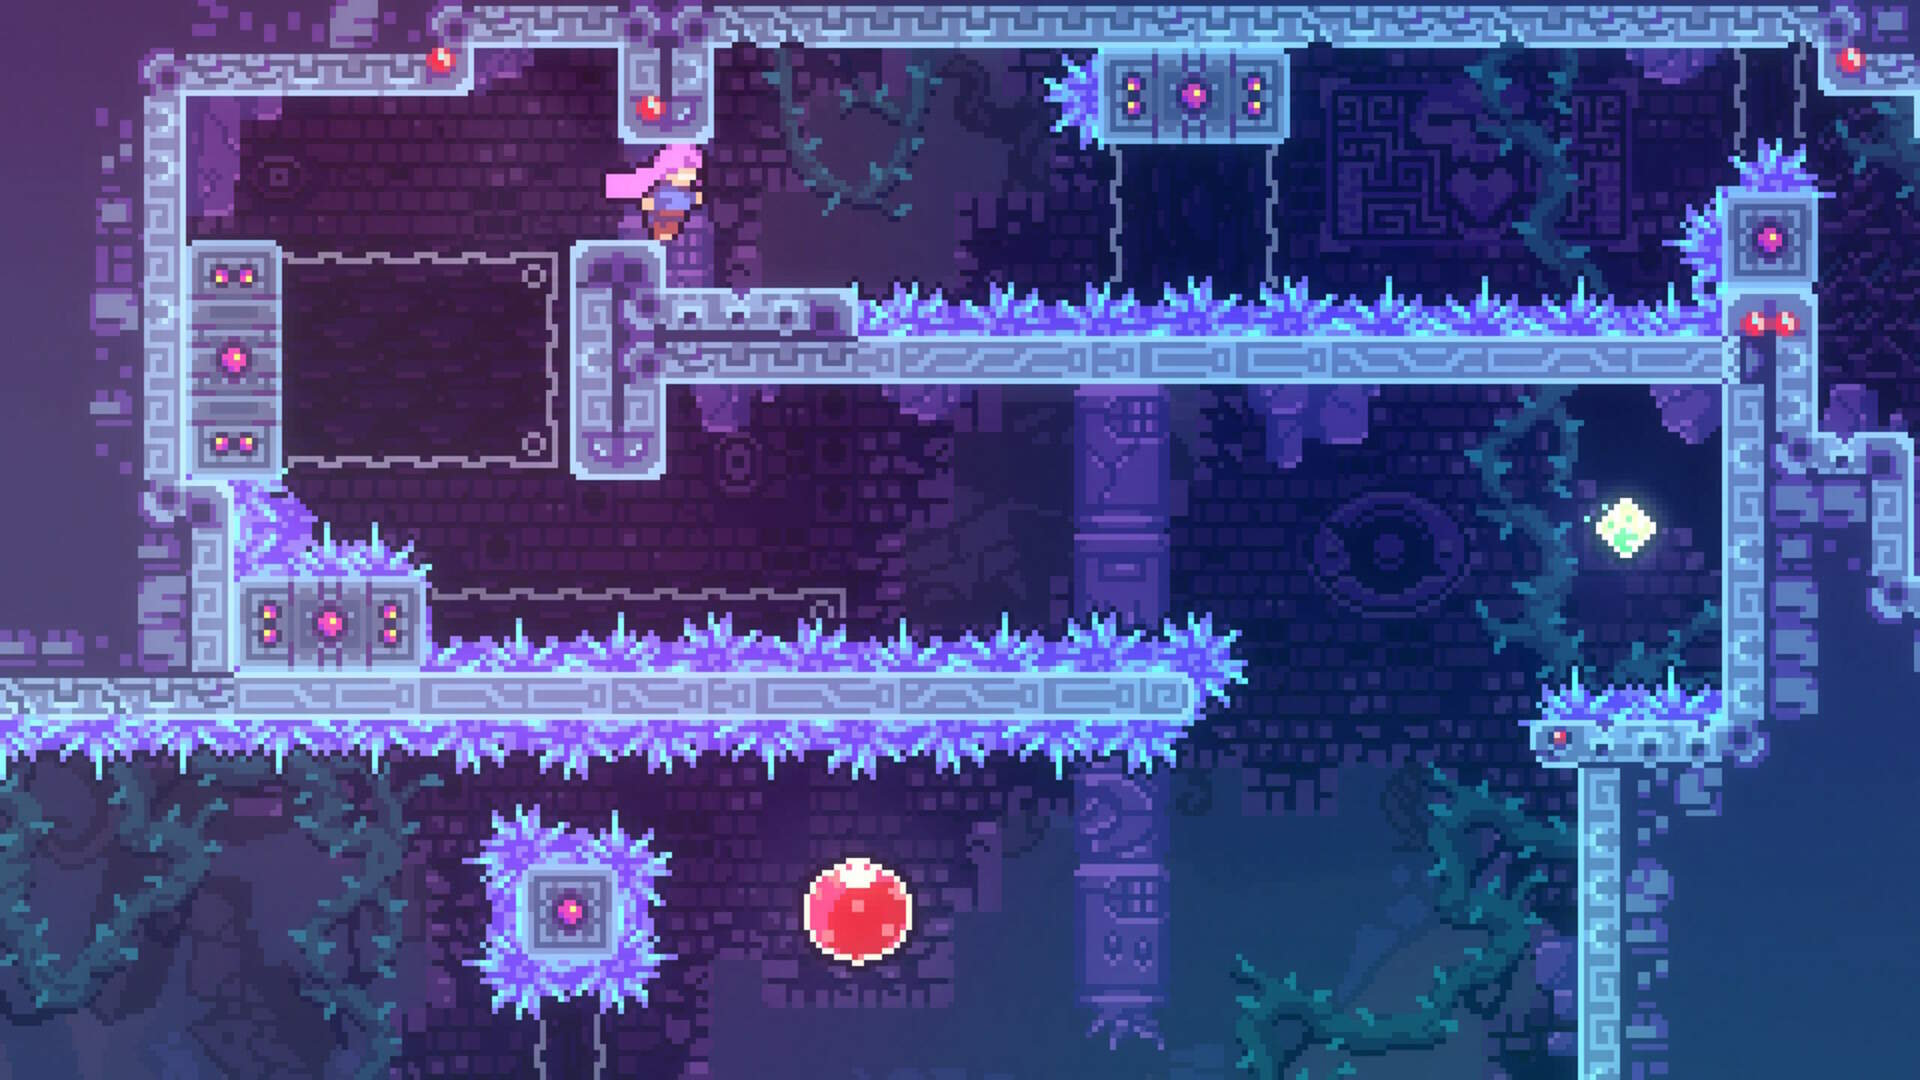 How Celeste Was Designed With Speedrunning in Mind